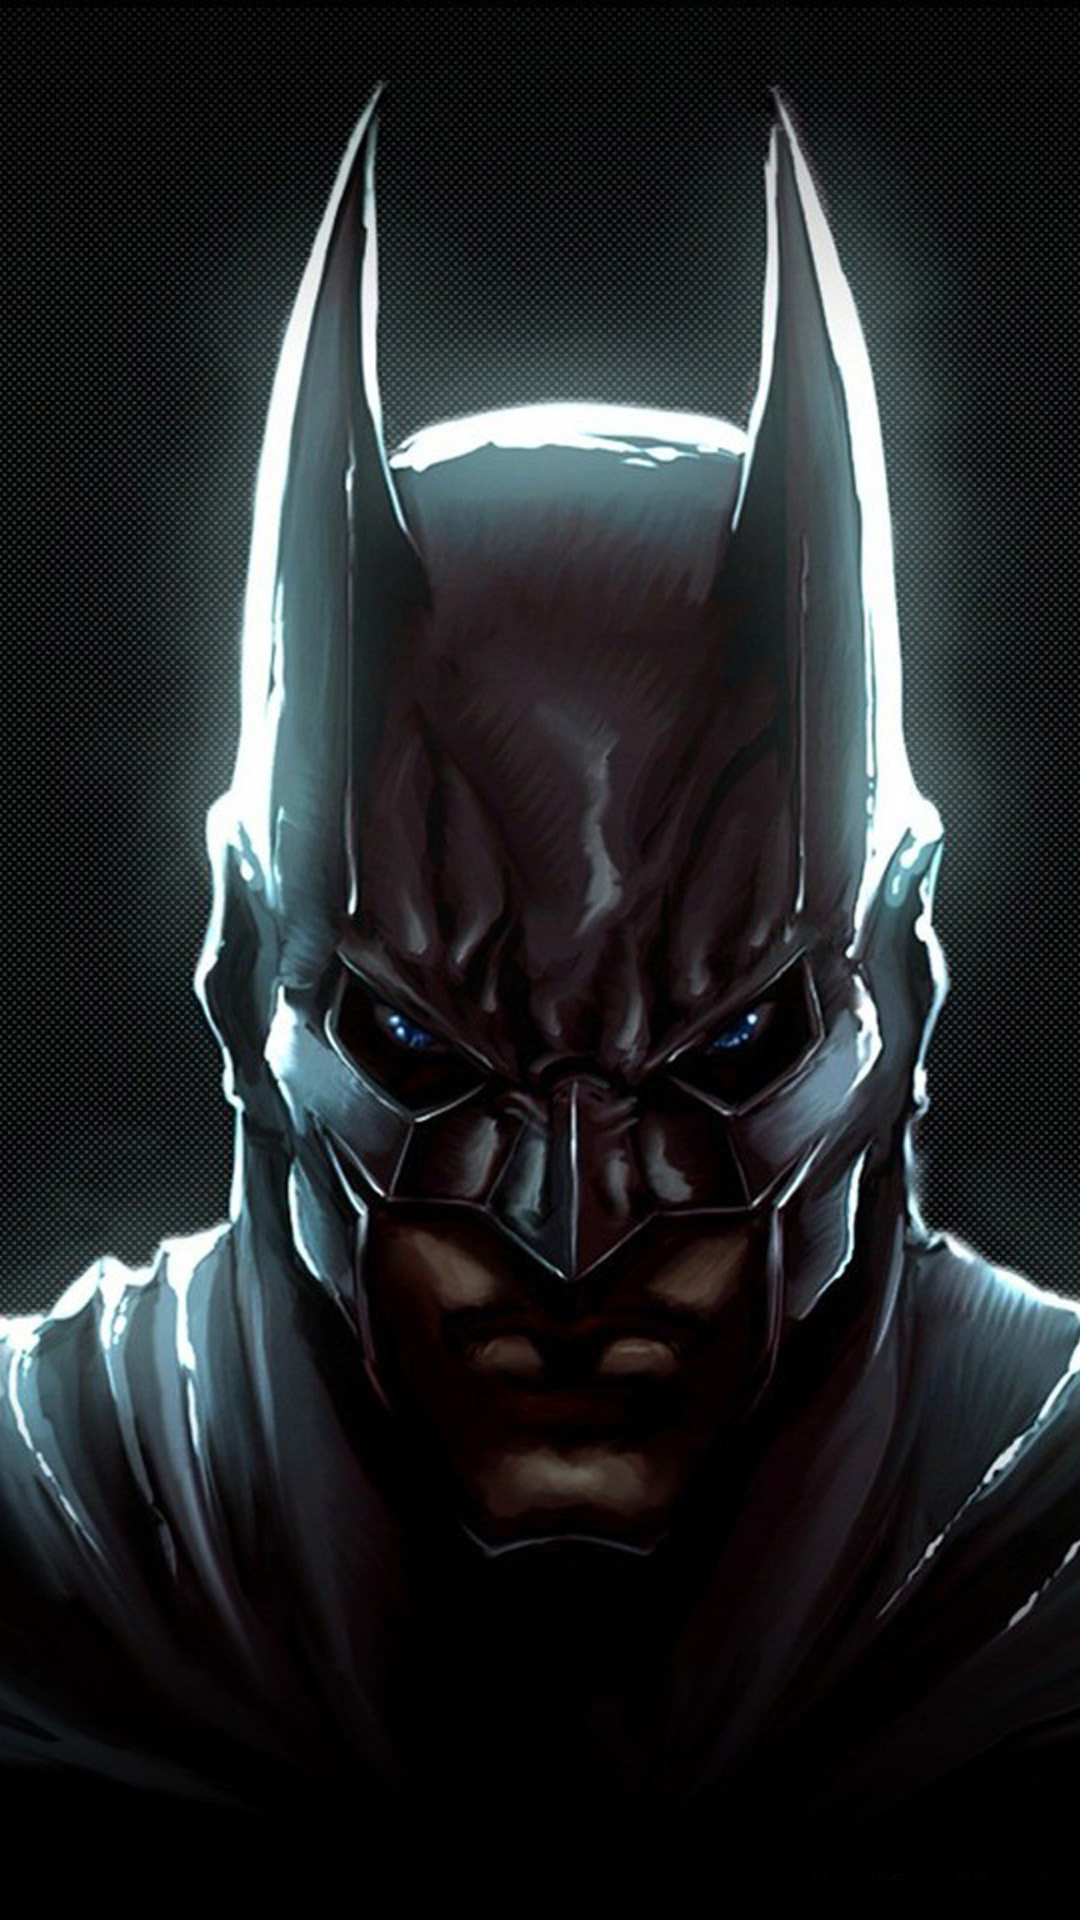 Batman 12 Games Galaxy wallpaper, Thousands of Galaxy Wallpapers fitted for  resolution.